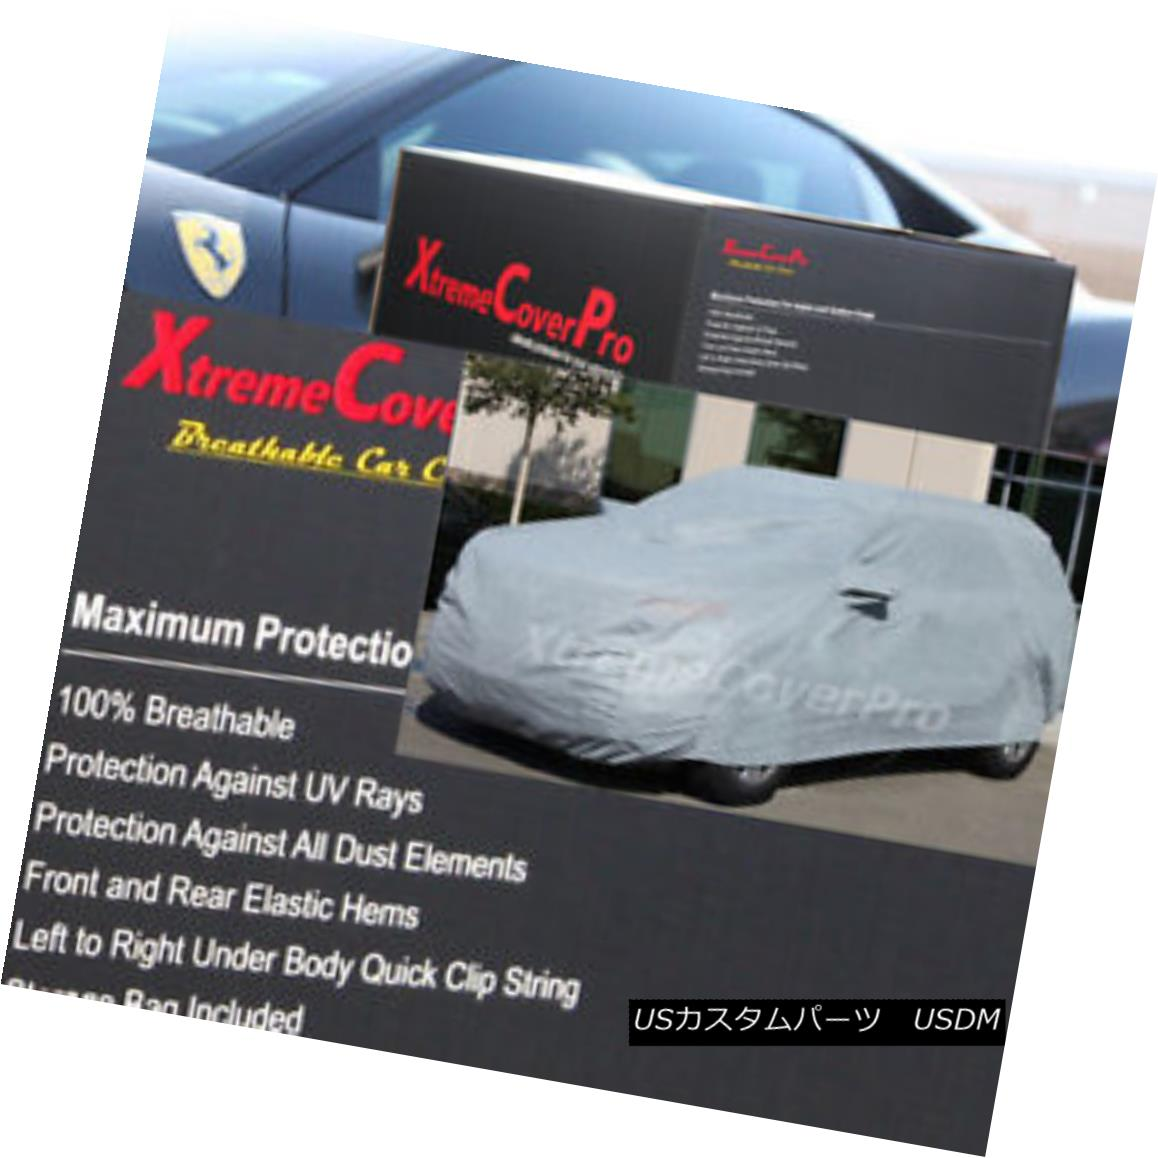 カーカバー 2016 MINI CLUBMAN BREATHABLE CAR COVER W/MIRROR POCKET - GREY 2016 MINI CLUBMAN BREATHABLE CAR COVER W / MIRRORポケット - グレー